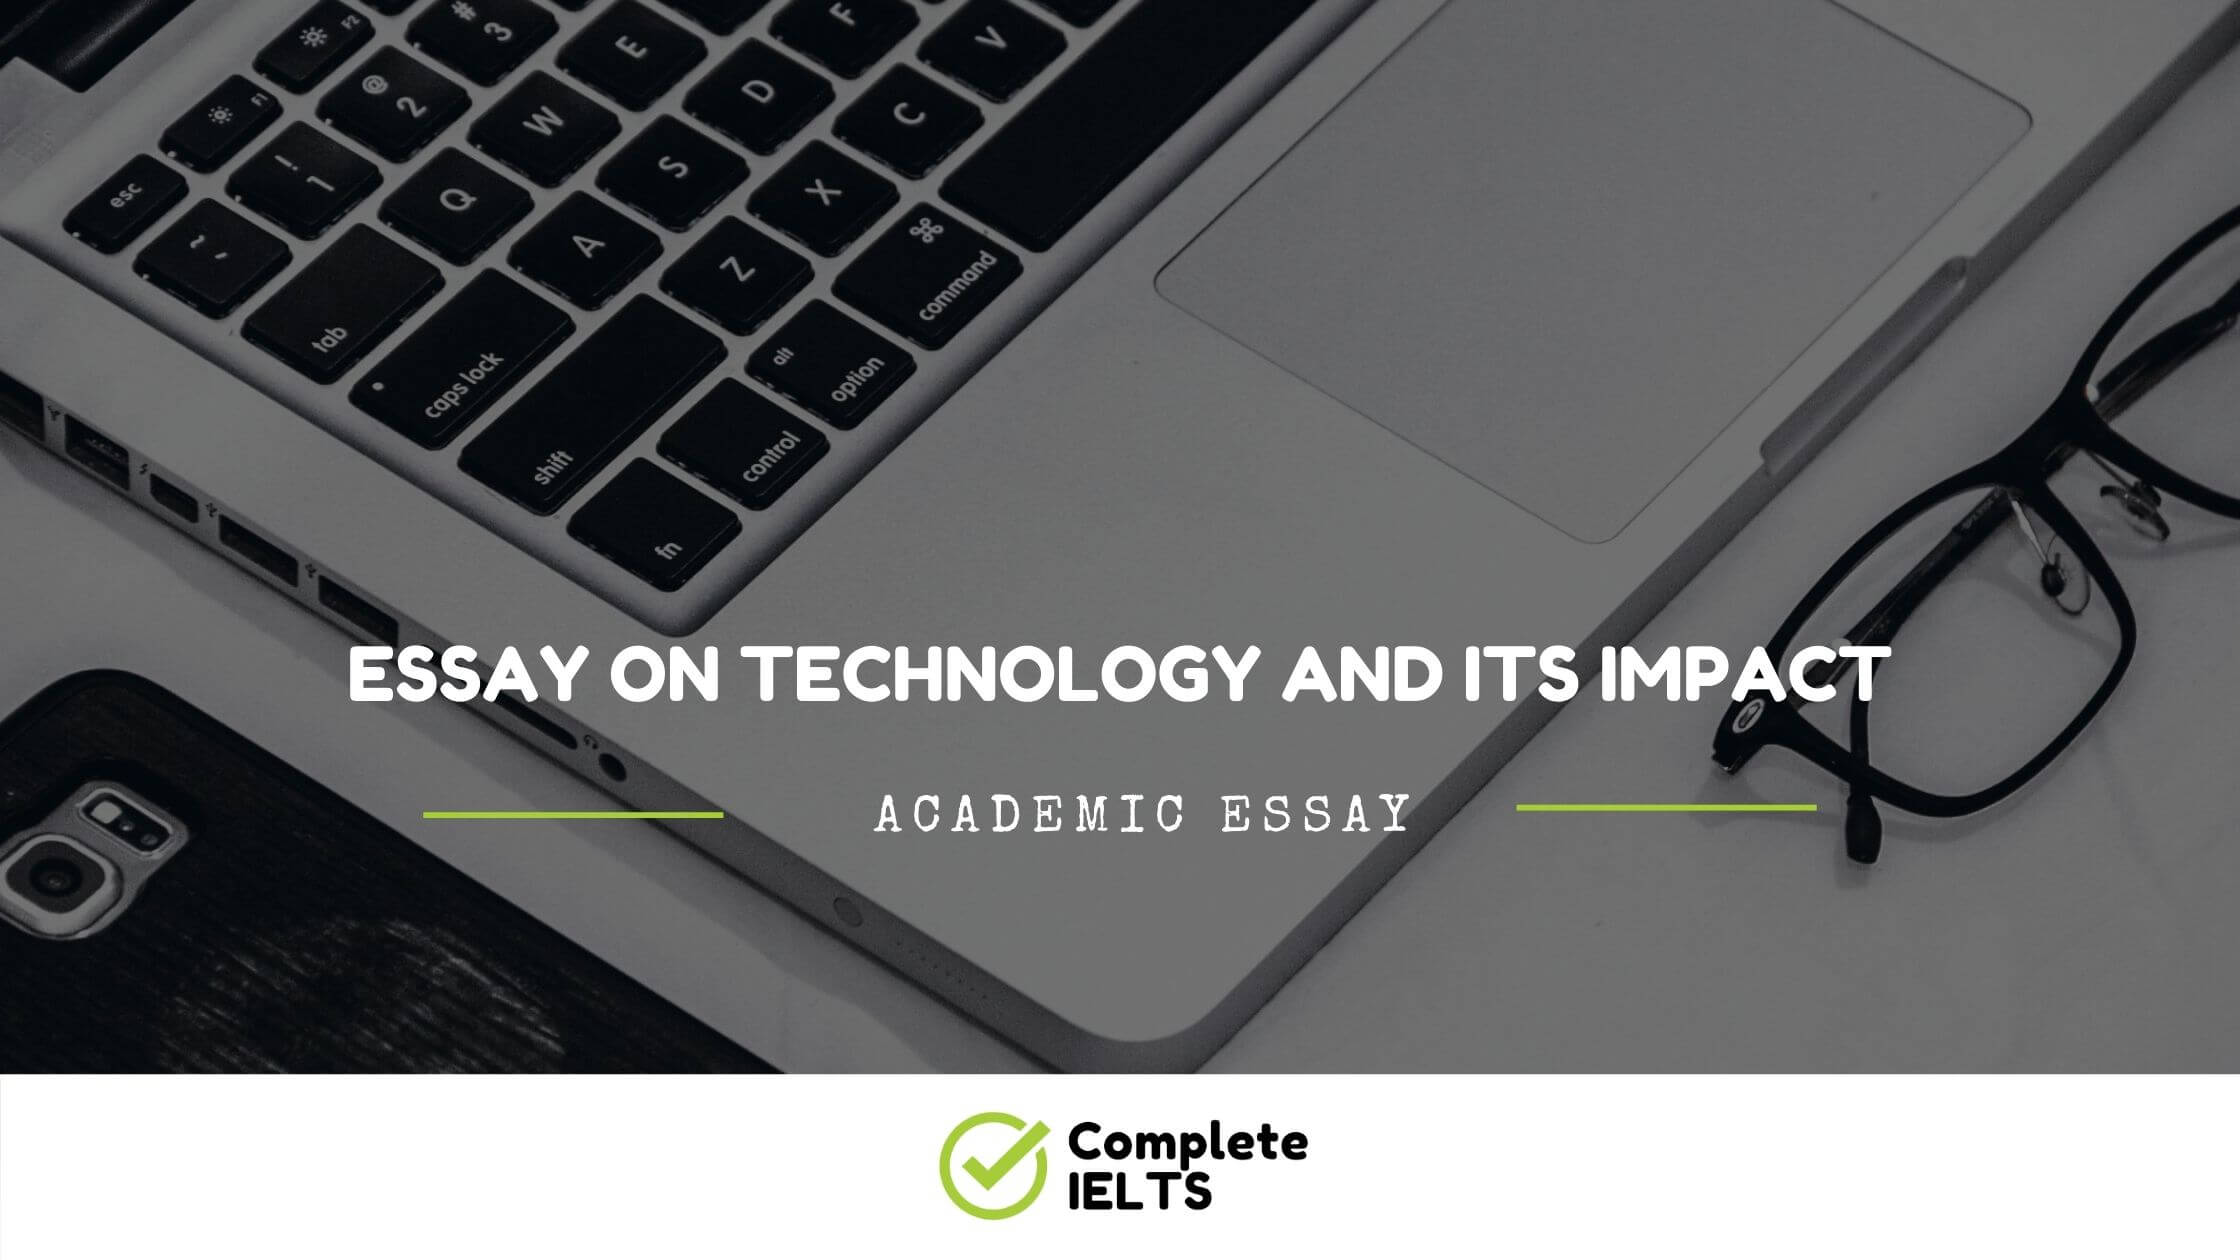 Essay on Technology and its impact